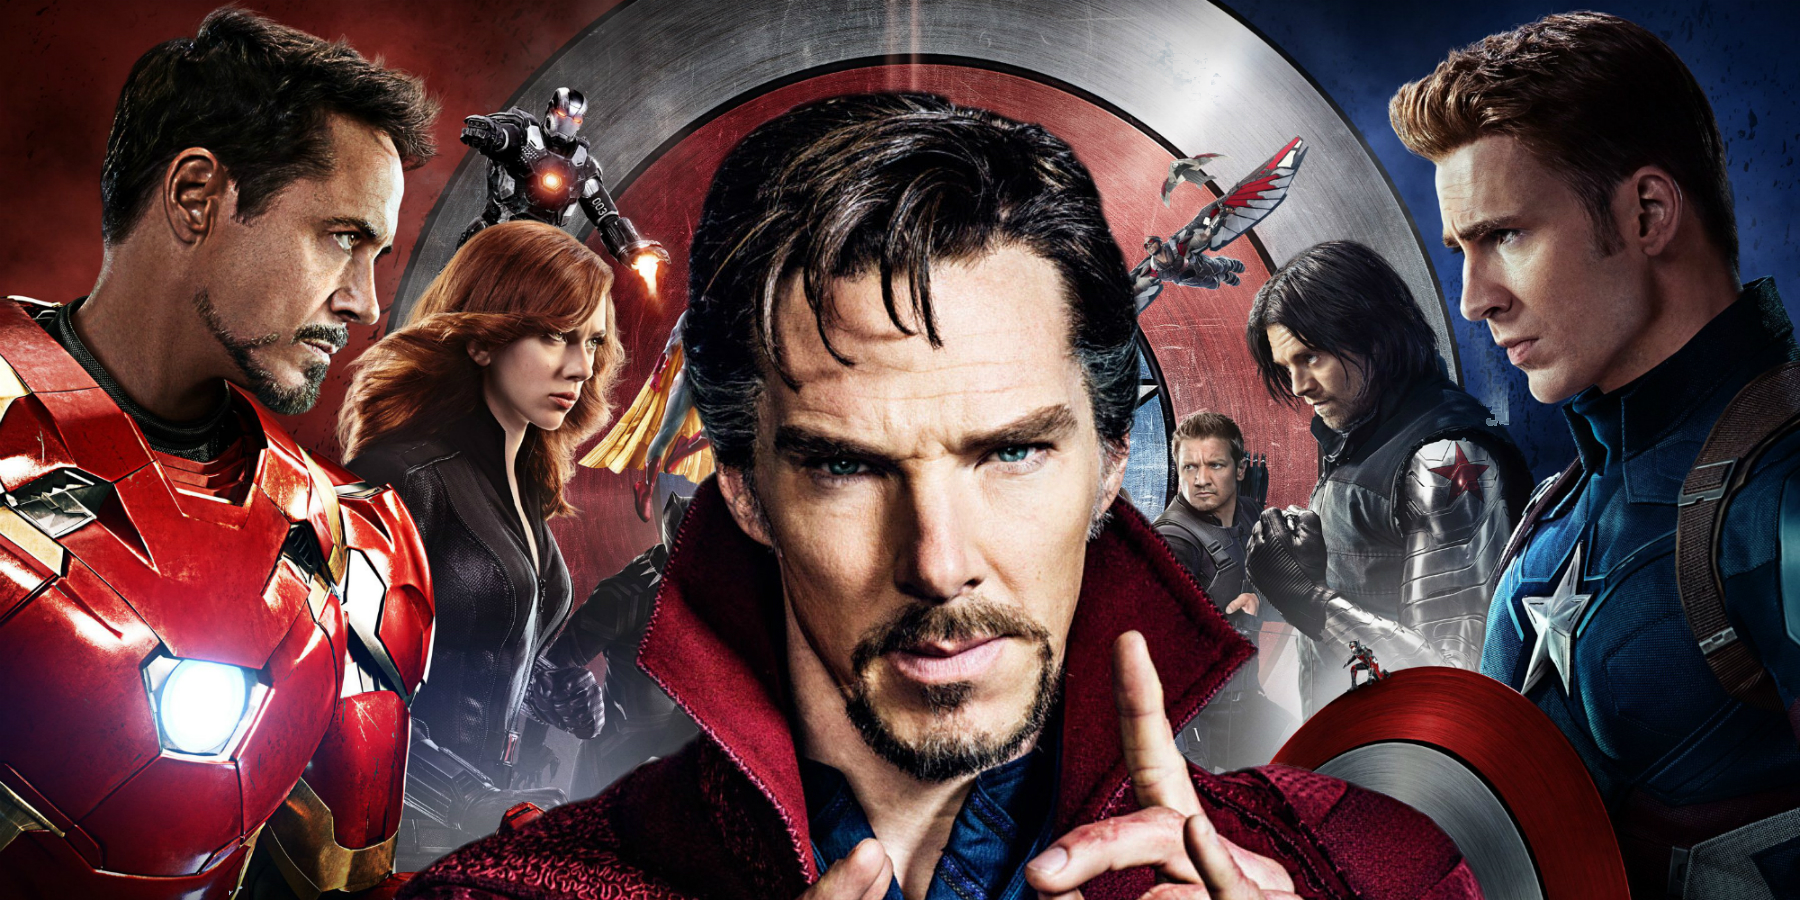 IMAX trailer for Marvel's Doctor Strange offers up new footage